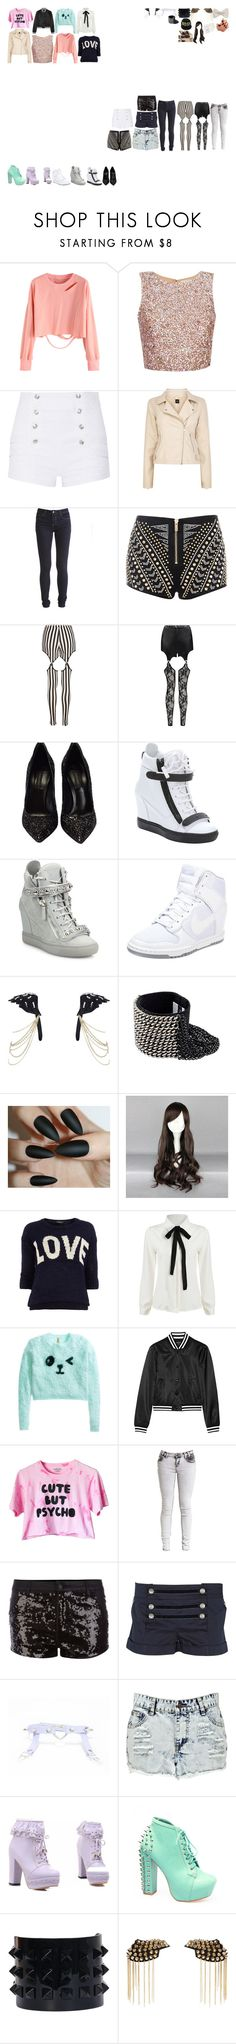 """Packing for Hogwarts"" by kaelighofficial ❤ liked on Polyvore featuring Pierre Balmain, Oasis, Vila Milano, Boohoo, Casadei, Giuseppe Zanotti, NIKE, River Island, Michelle Roy and adidas"